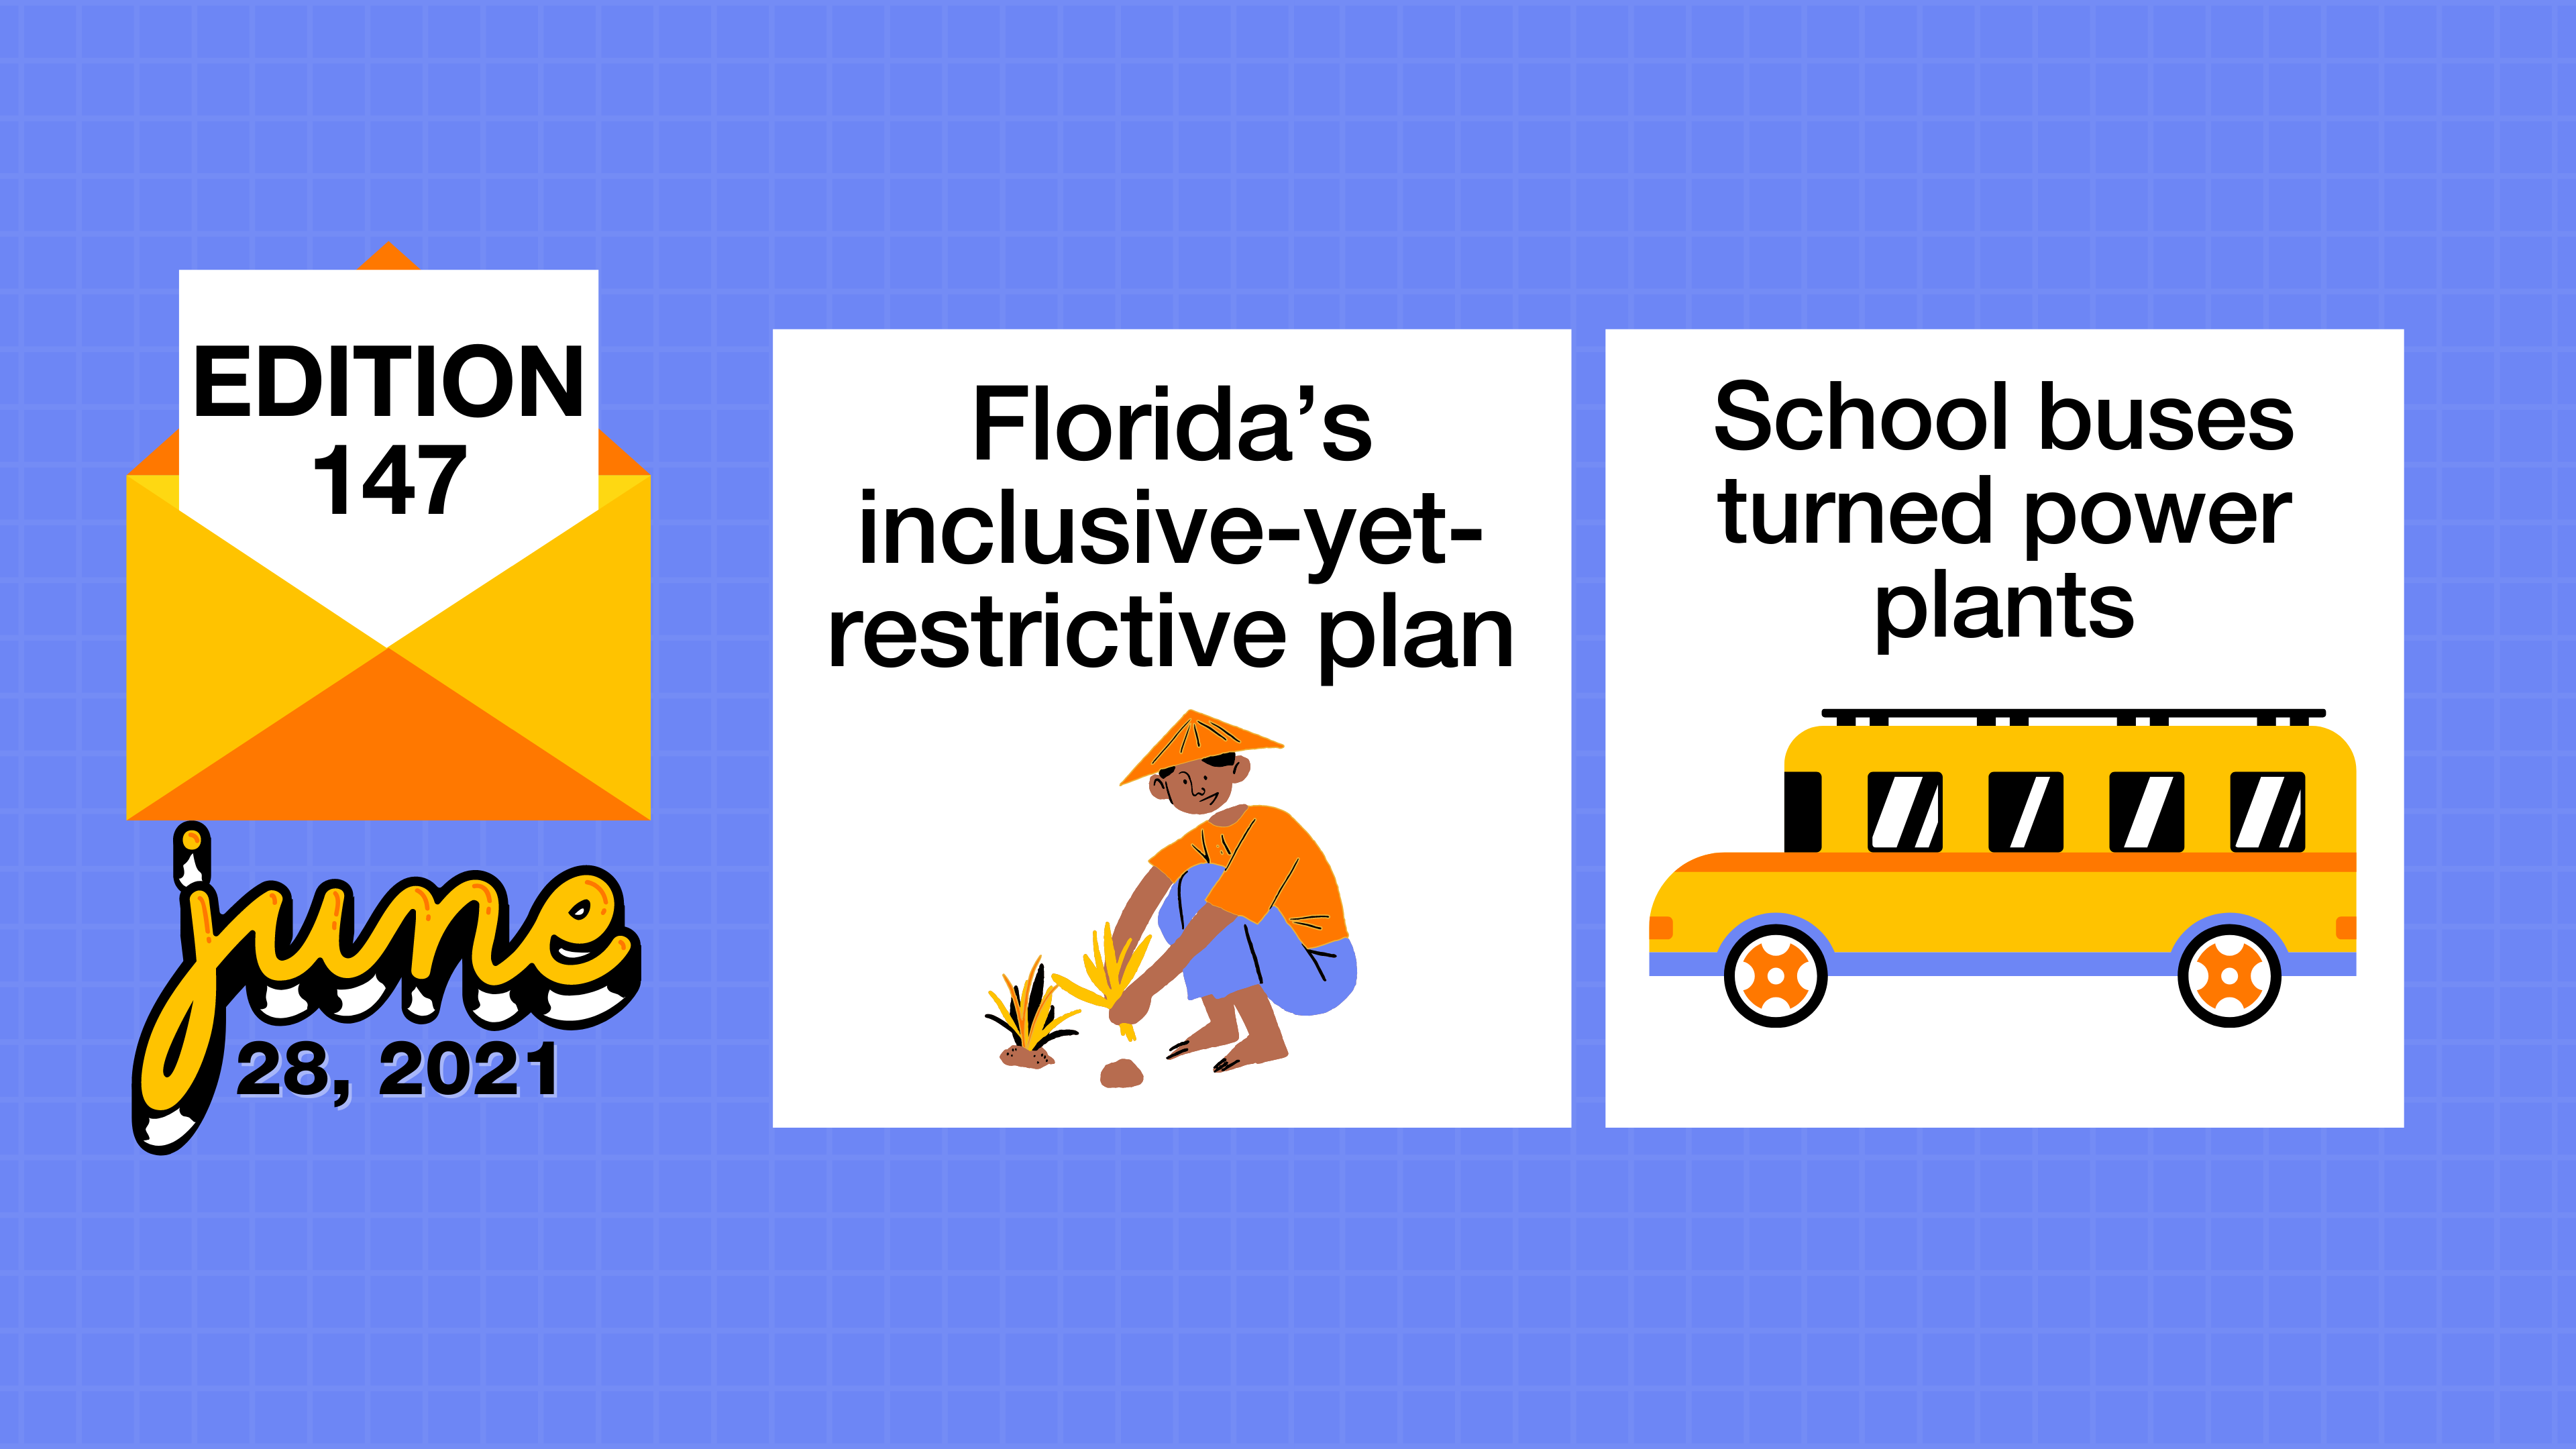 Florida's inclusive-yet-restrictive plan and school buses turned